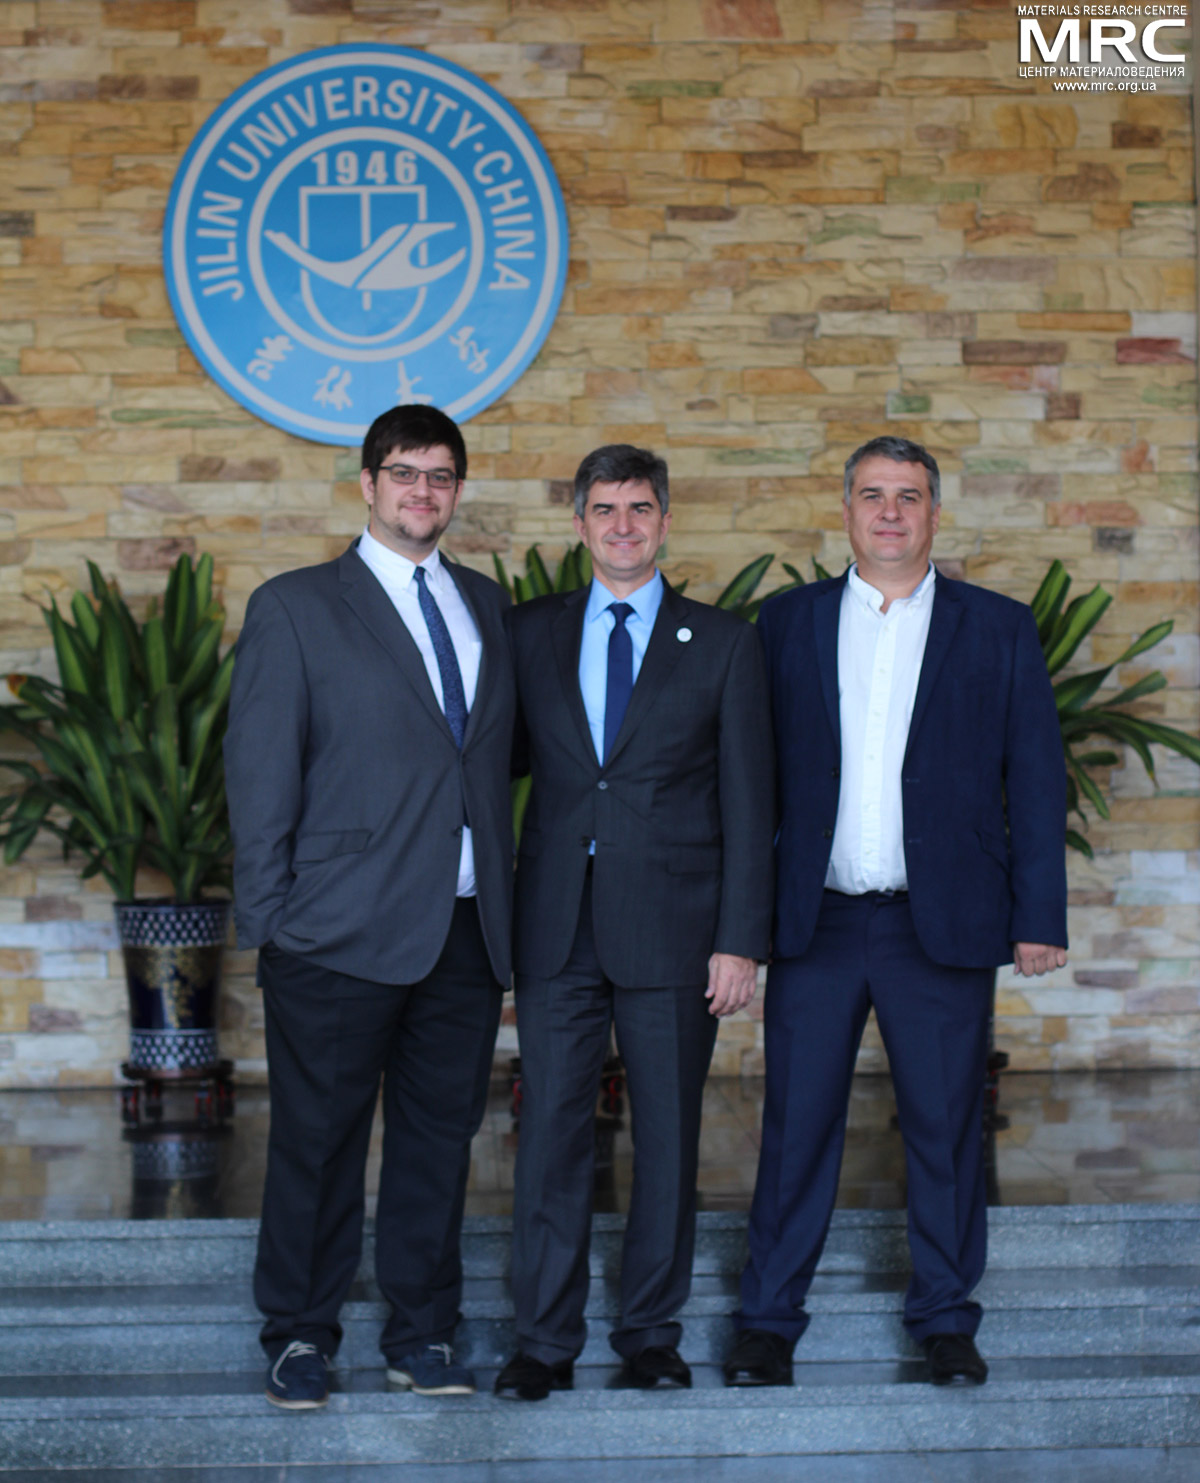 Pavel Gogotsi, prof. Yury Gogotsi, MRC director Oleksiy Gogotsi, Jilin University, Changchun, China, October 20, 2016